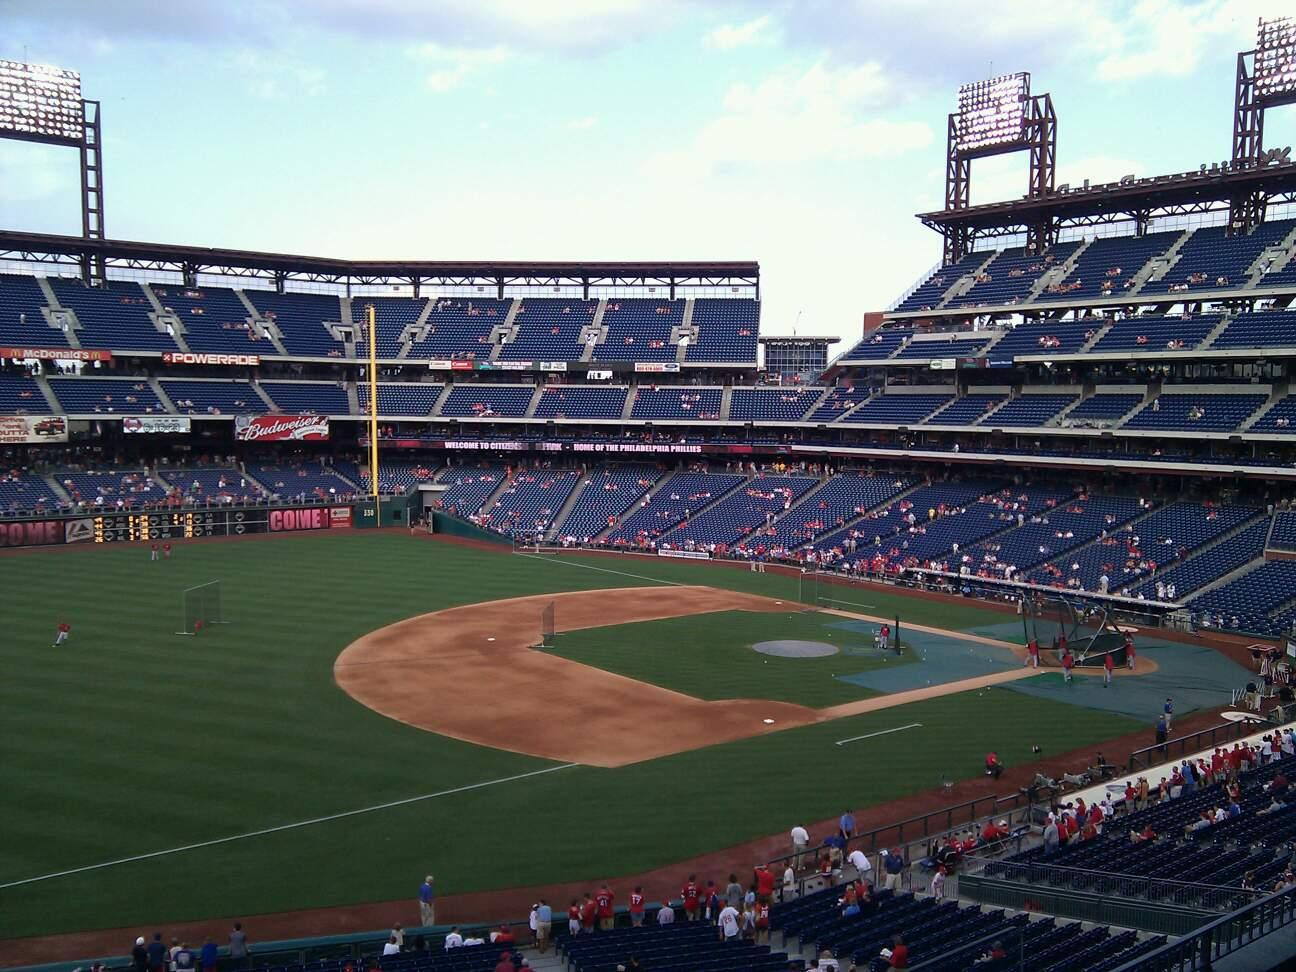 Citizens Bank Park Section 233 Row 5 Seat 5